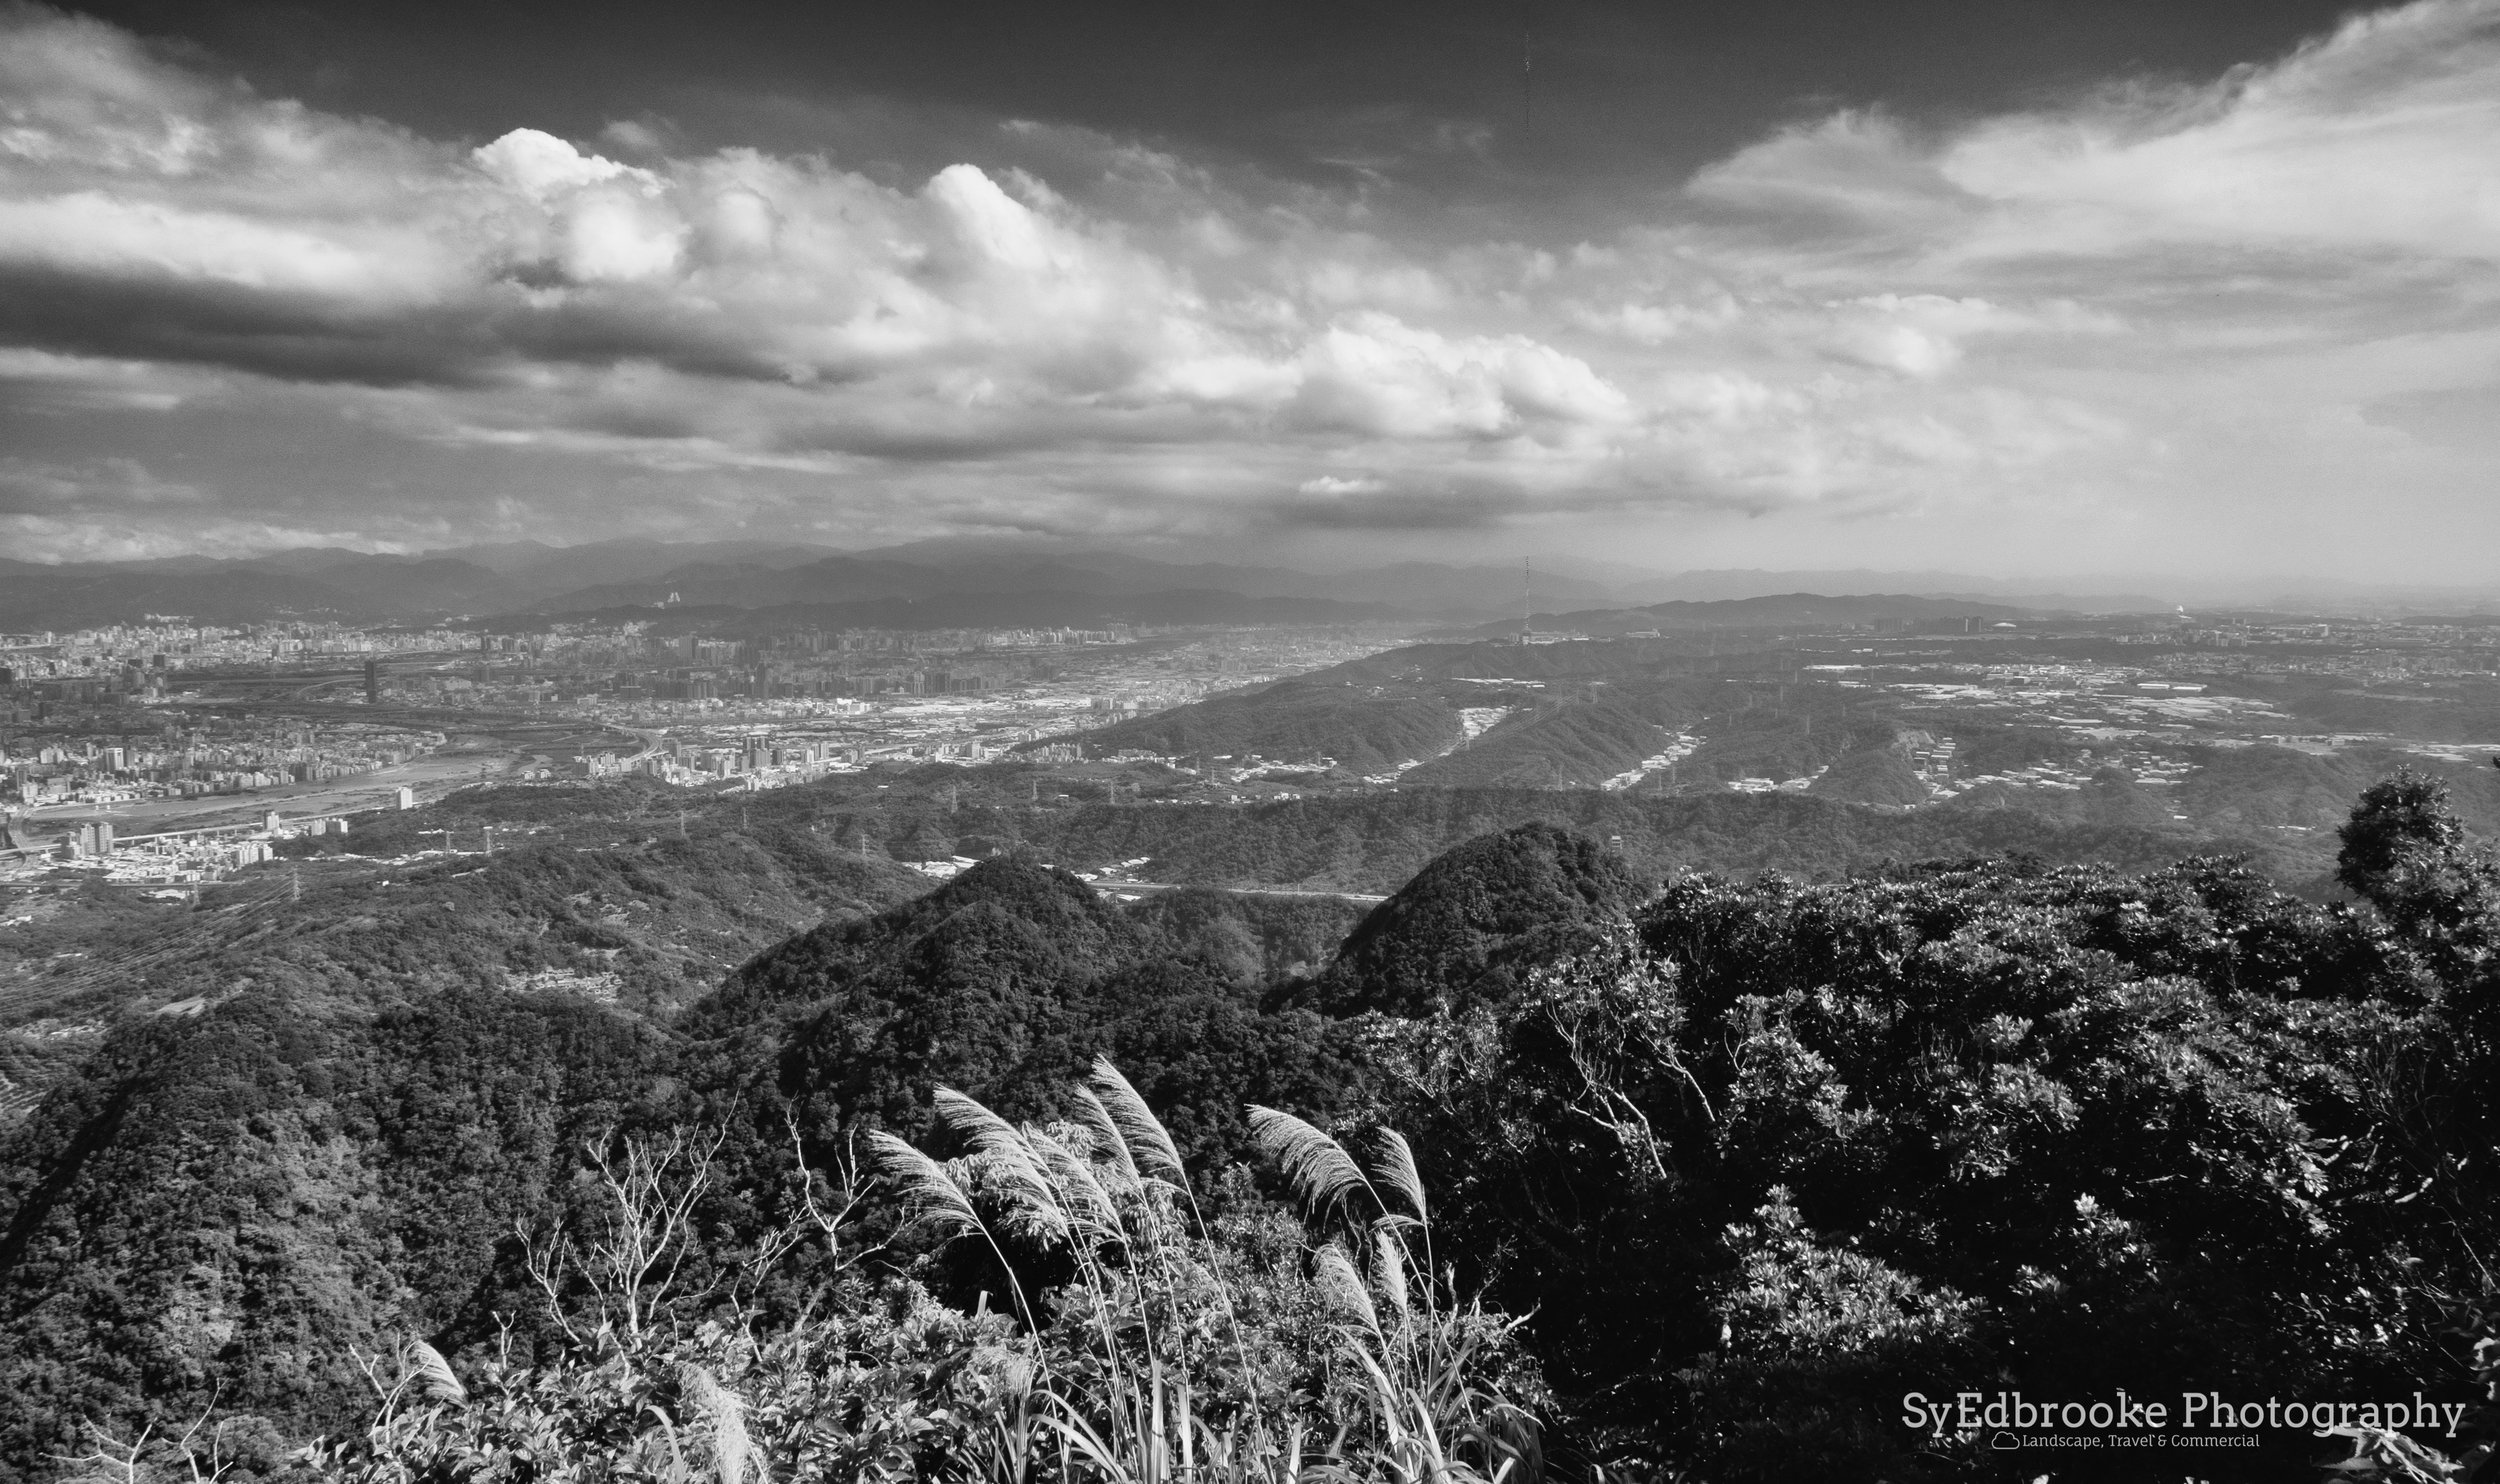 Looking back towards Banqiao and Taoyuan. f11, ISO 200, 1/80,24mm